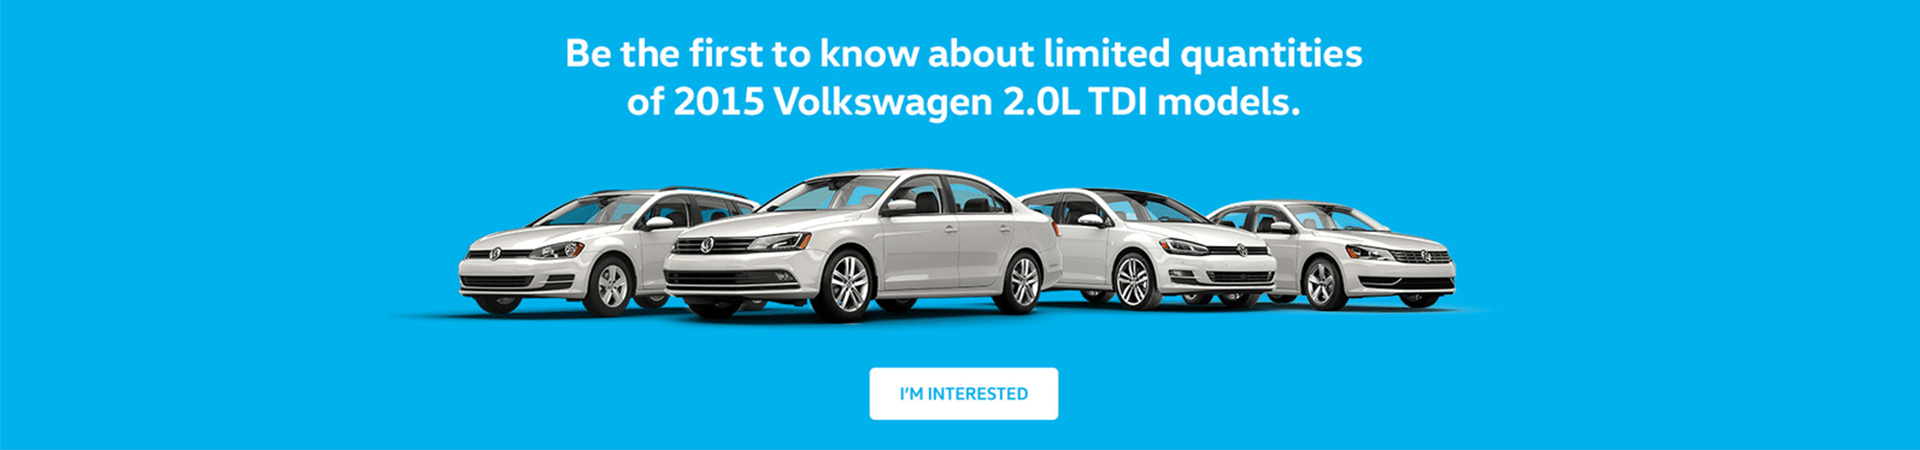 Volkswagen 2.0-Liter TDI Vehicles